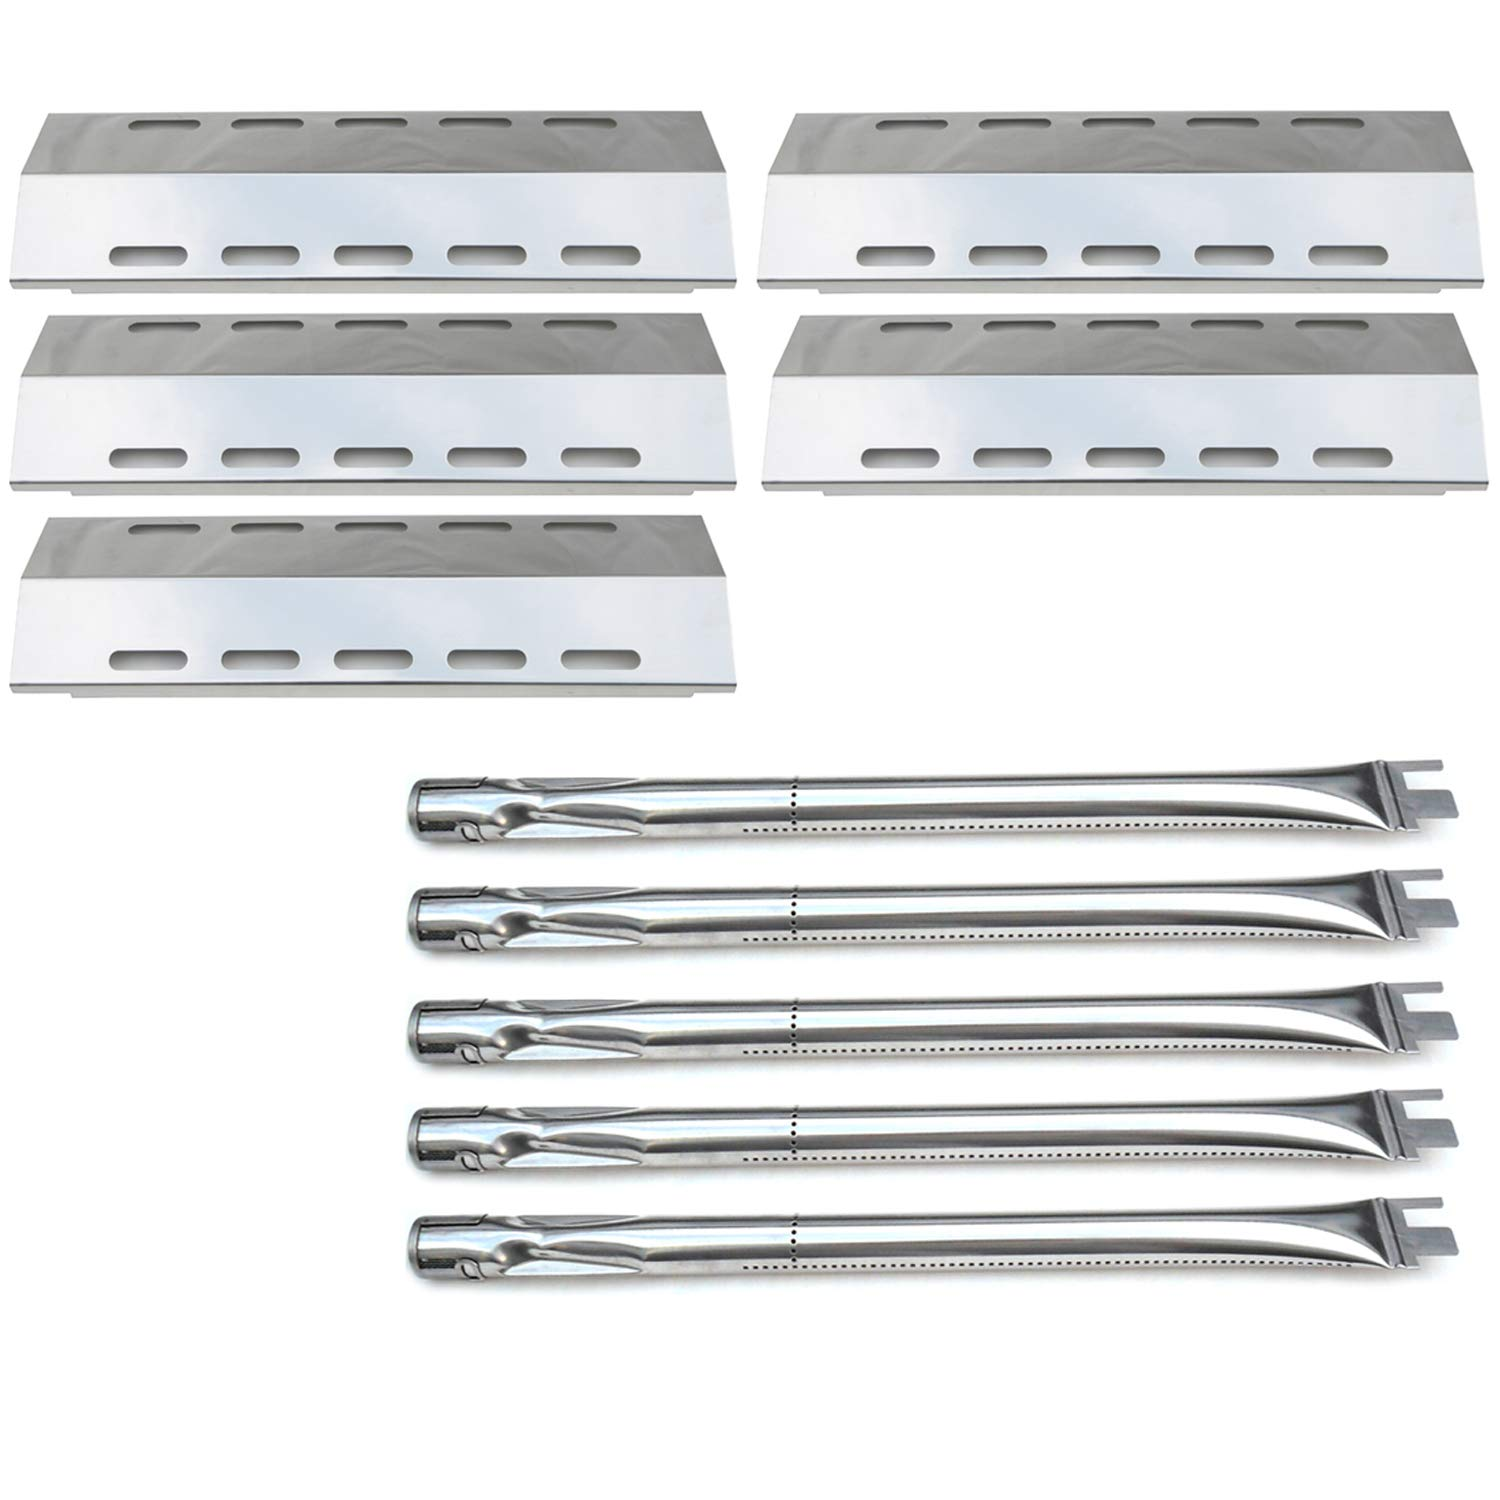 Direct store Parts Kit DG257 Replacement Ducane 5 Burner 30500701/30500097 Gas Grill Repair Kit Stainless Steel Burners & Heat Plates